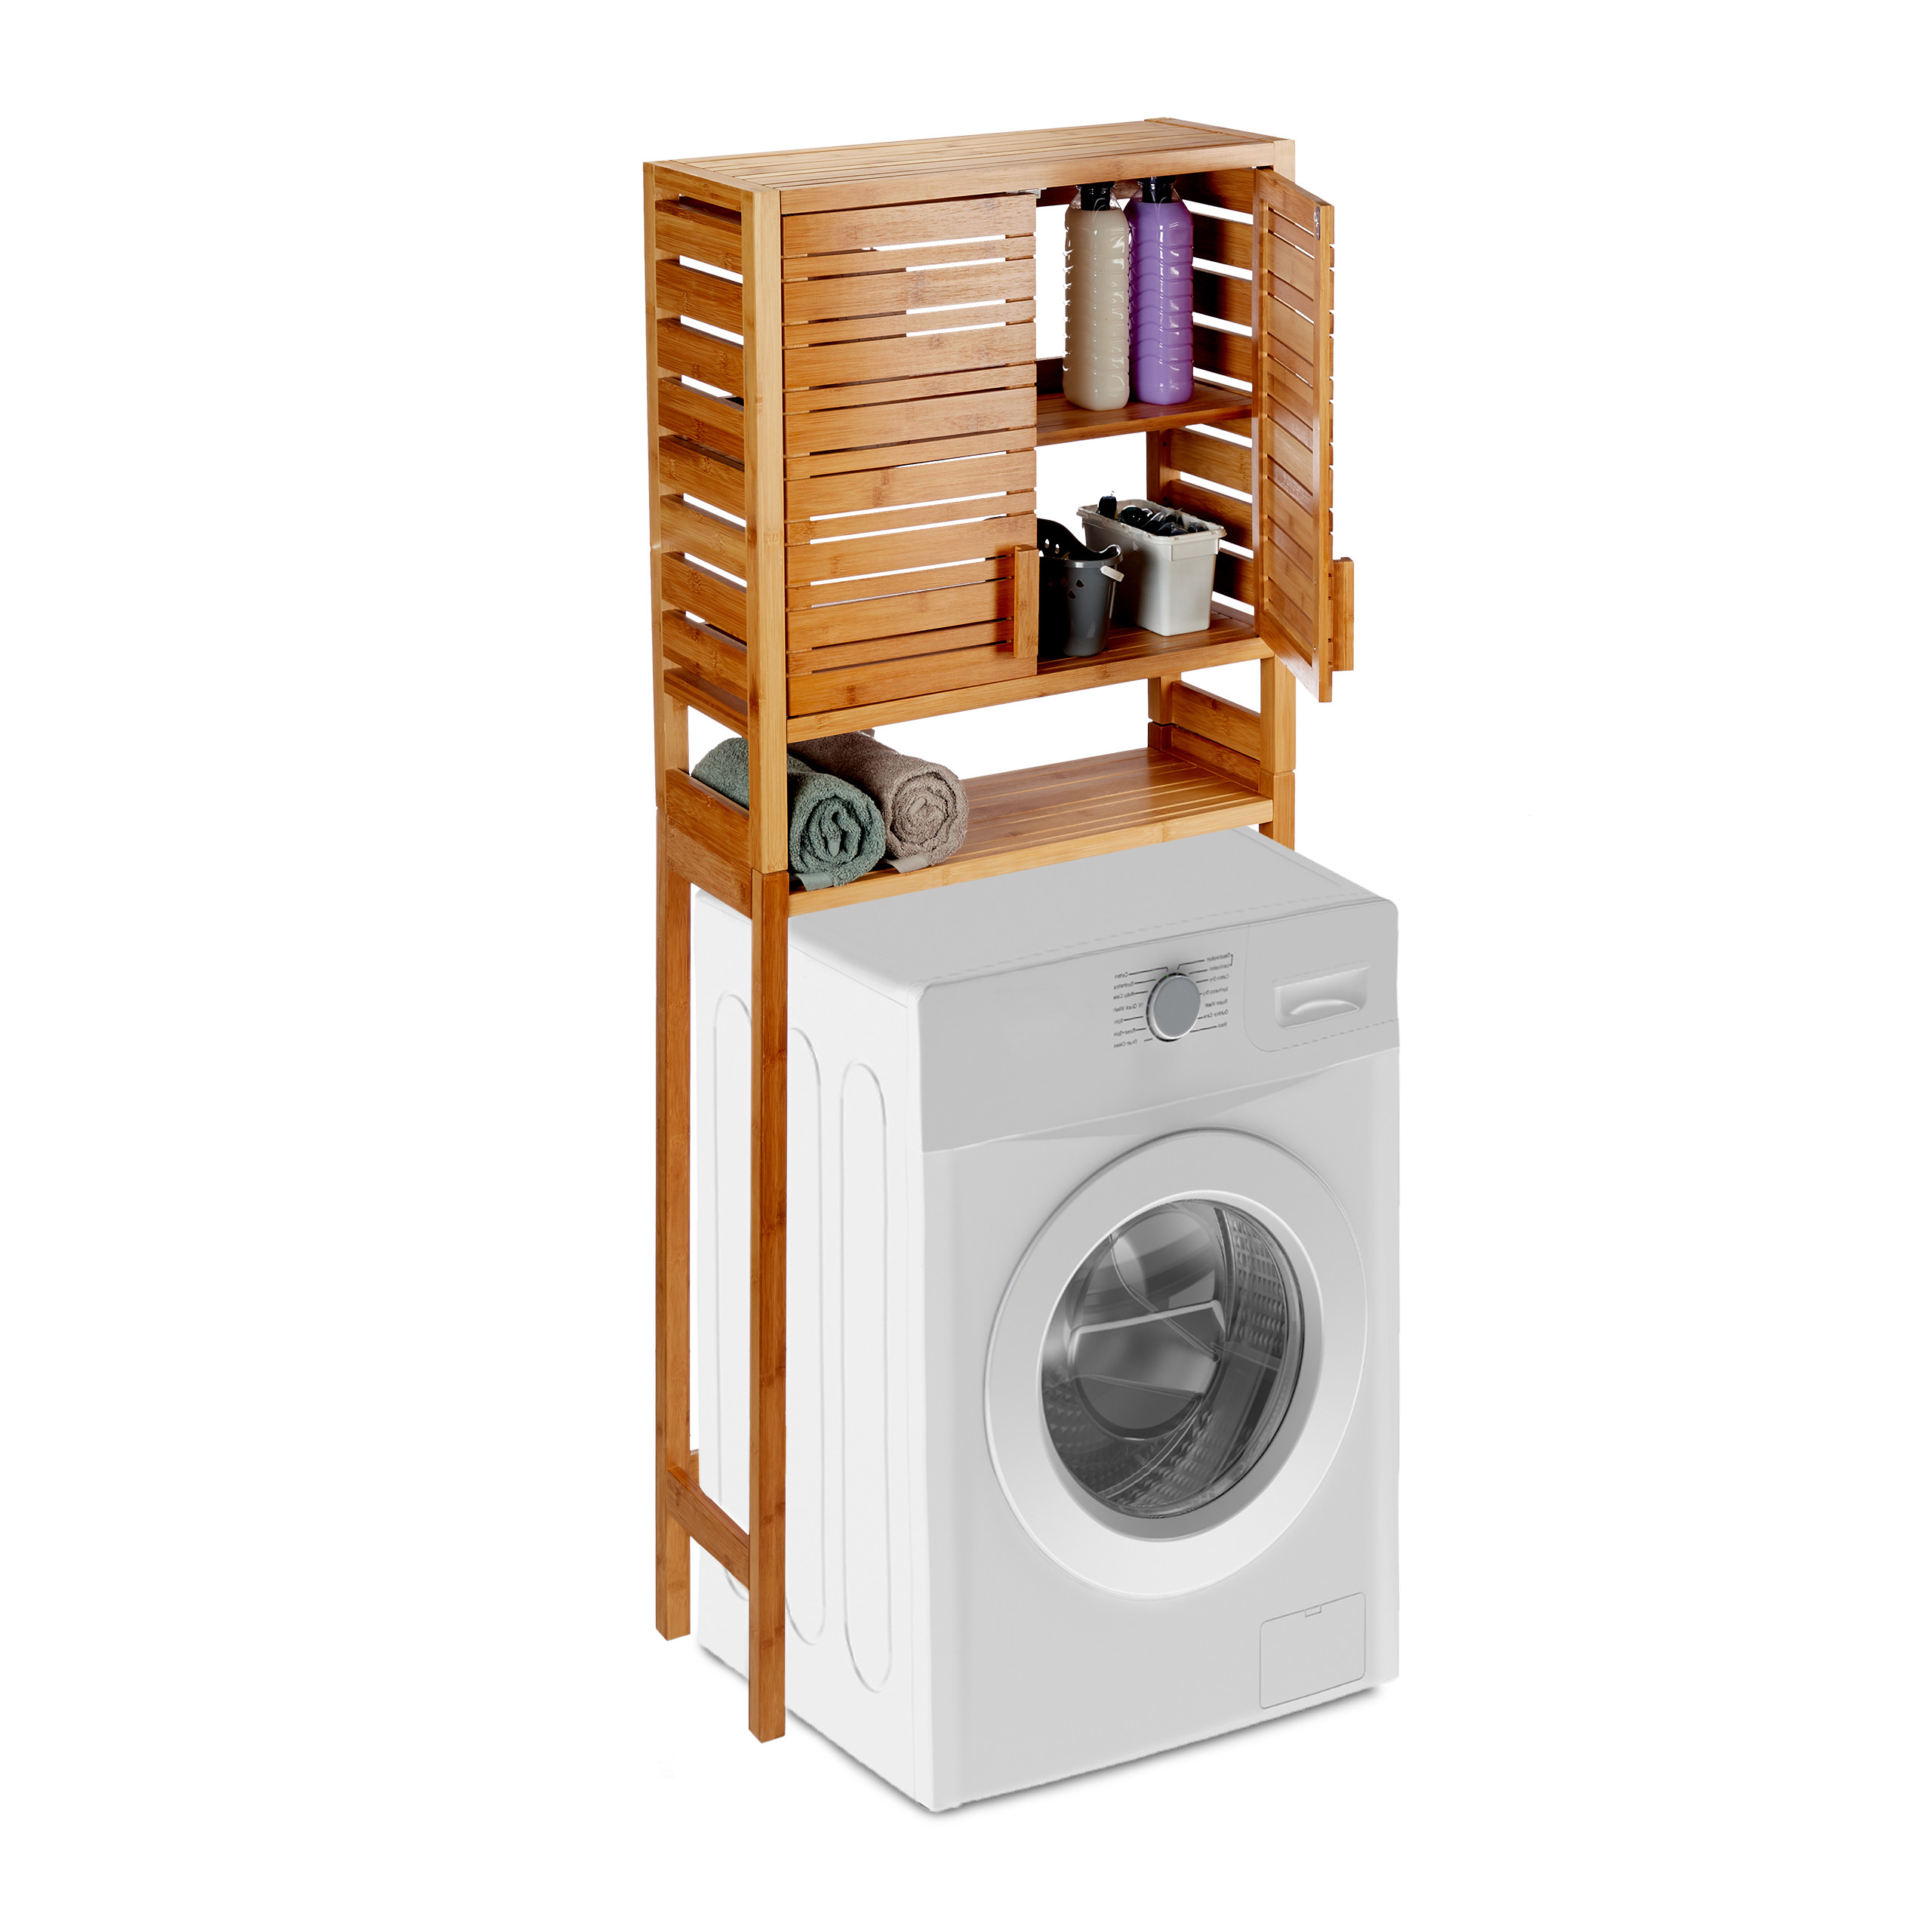 Washing Machine Cabinet Bamboo High Cabinet Natural Toilet On